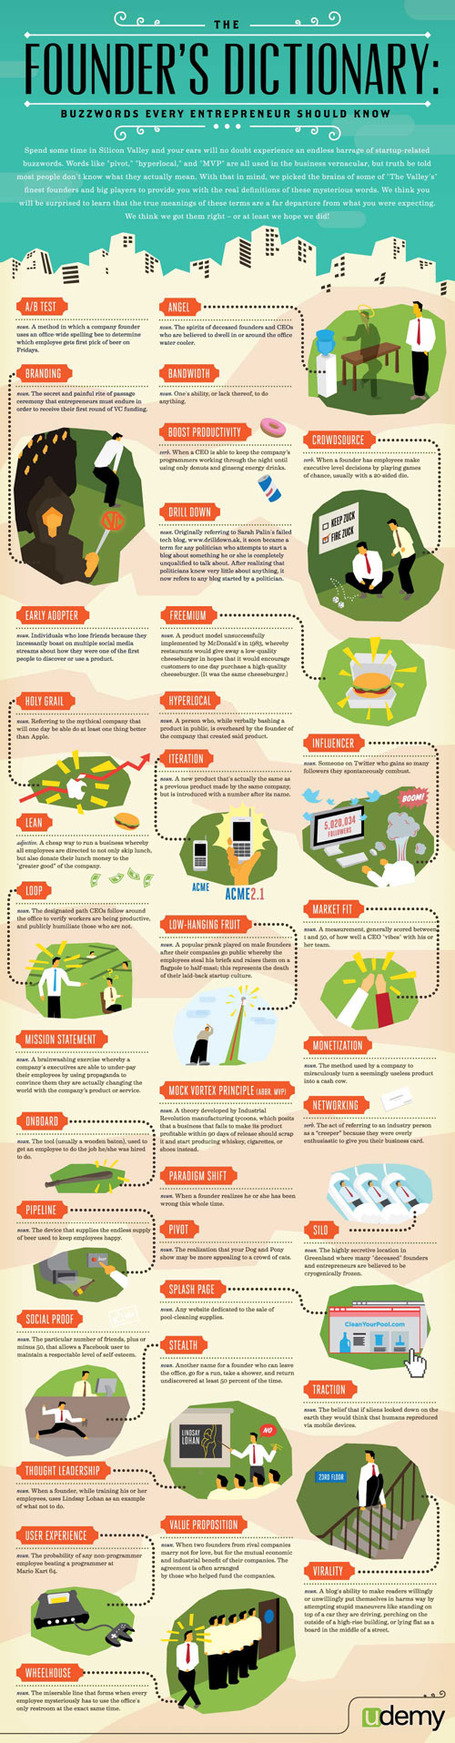 INFOGRAPHIC: 35 Startup Buzzwords Every Entrepreneur Should Know | Cloud Central | Scoop.it